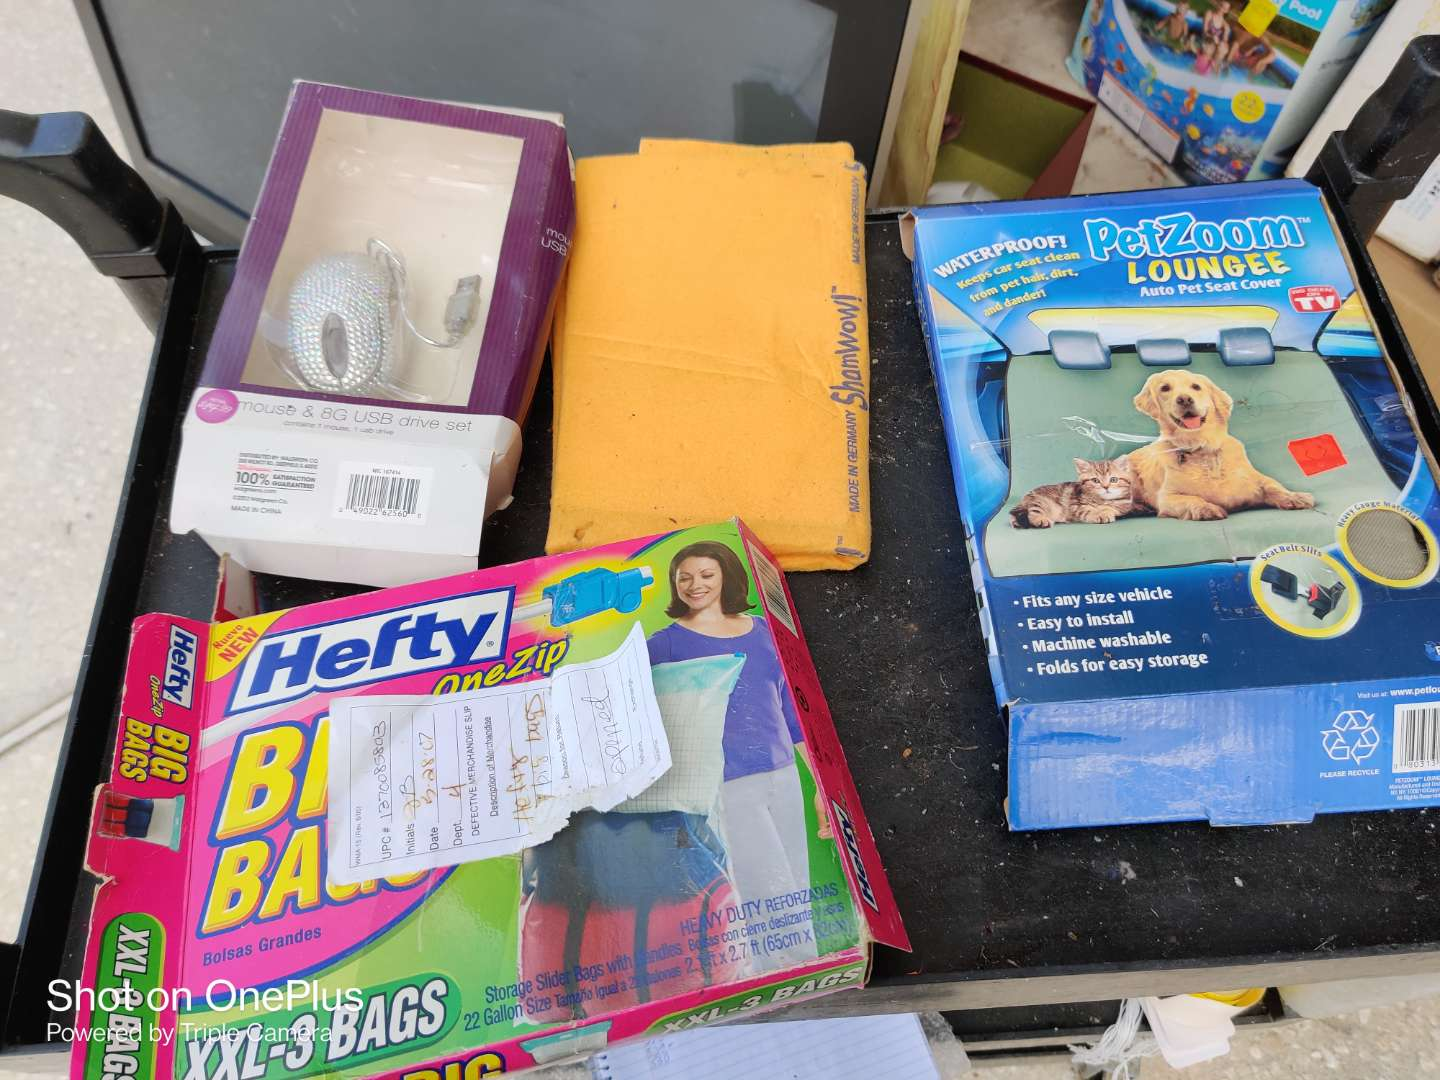 529 lots of four items shams hefty extra large bag computer mouse pet zoom bed